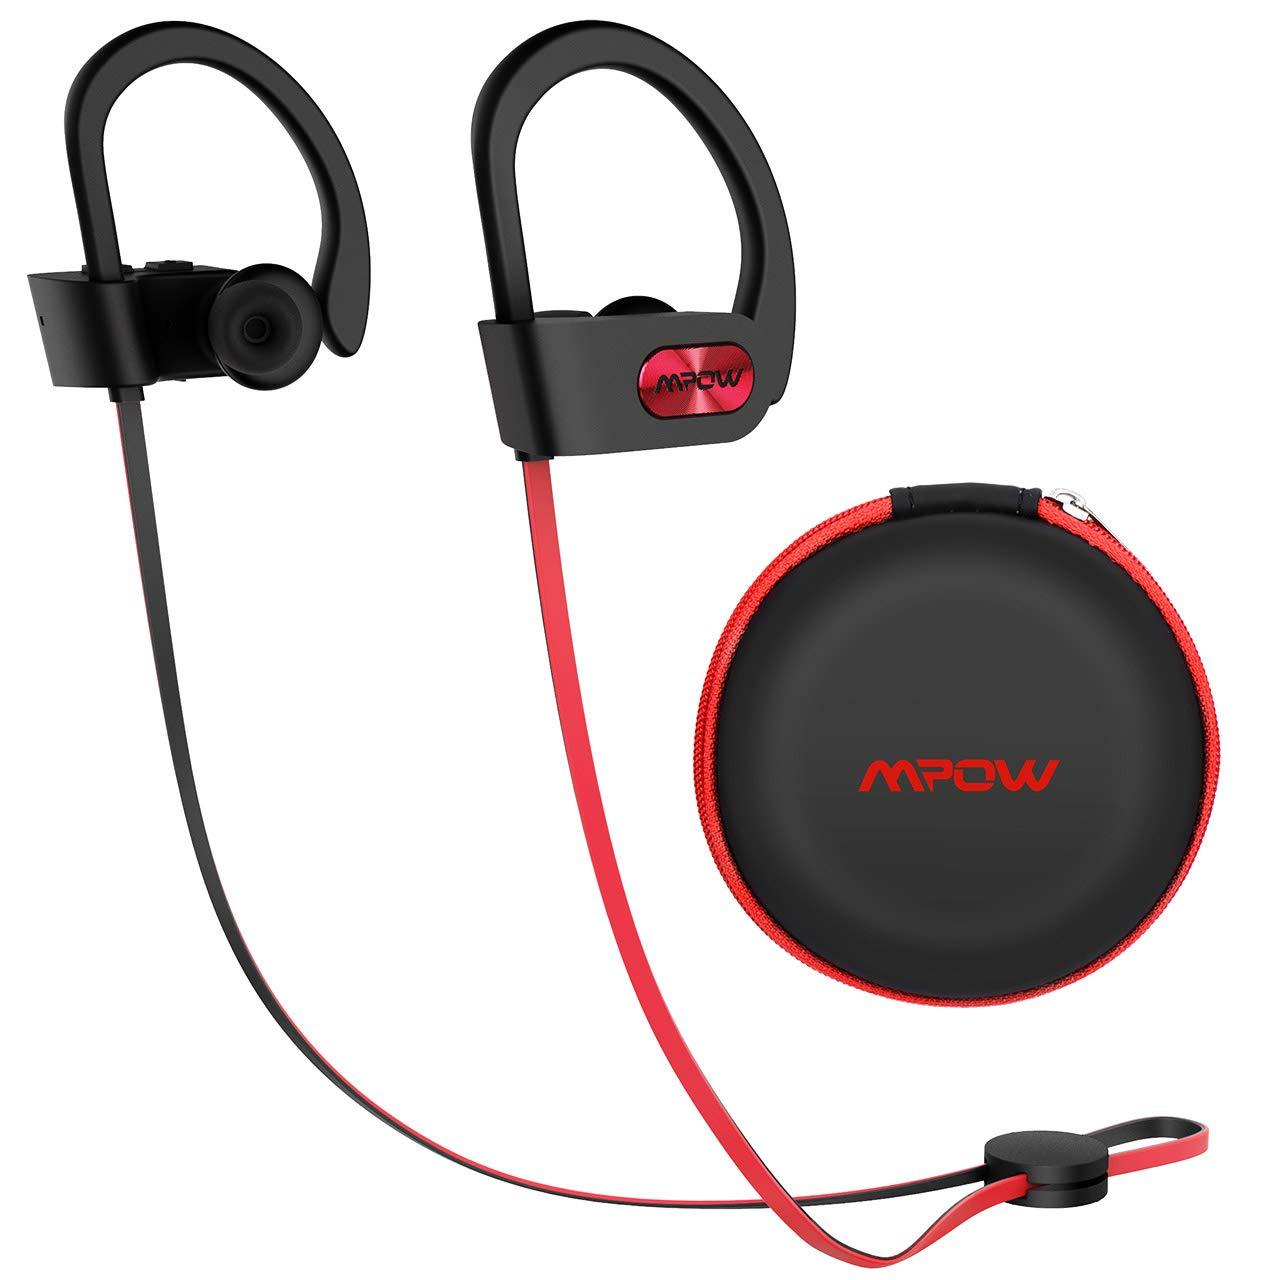 Mpow Flame Upgraded Bluetooth Headphones with Case, IPX7 Waterproof Earphones Sport W/Mic, 7-9 Hrs Playing time, in-Ear Wireless Earbuds W/Rich Bass & HiFi Stereo, Running Headphones for iOS Android